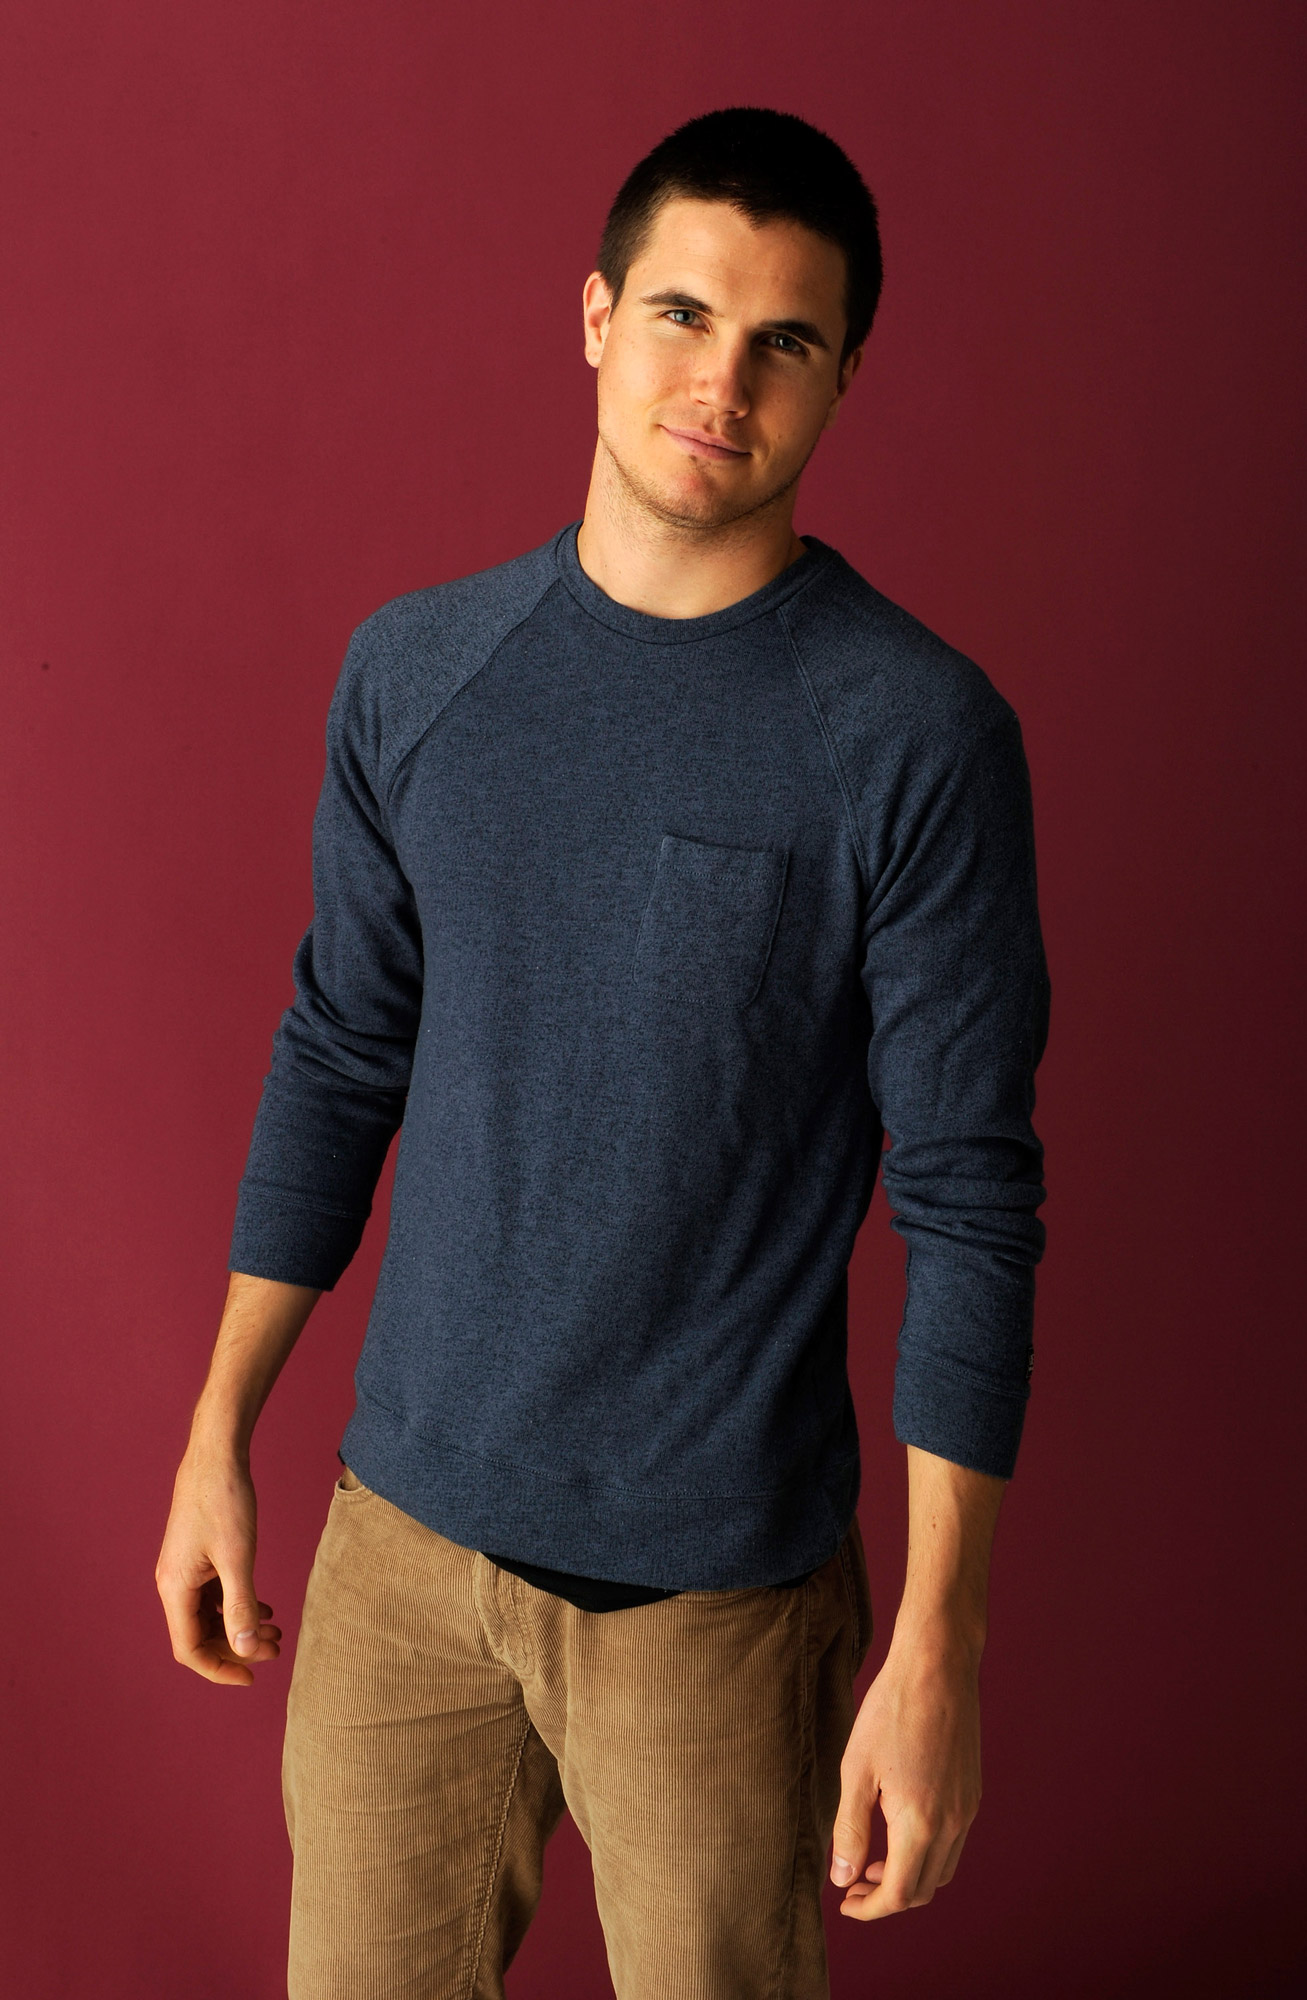 Robbie Amell in Tomorrow People Episodes 1.02-03 | Male ...